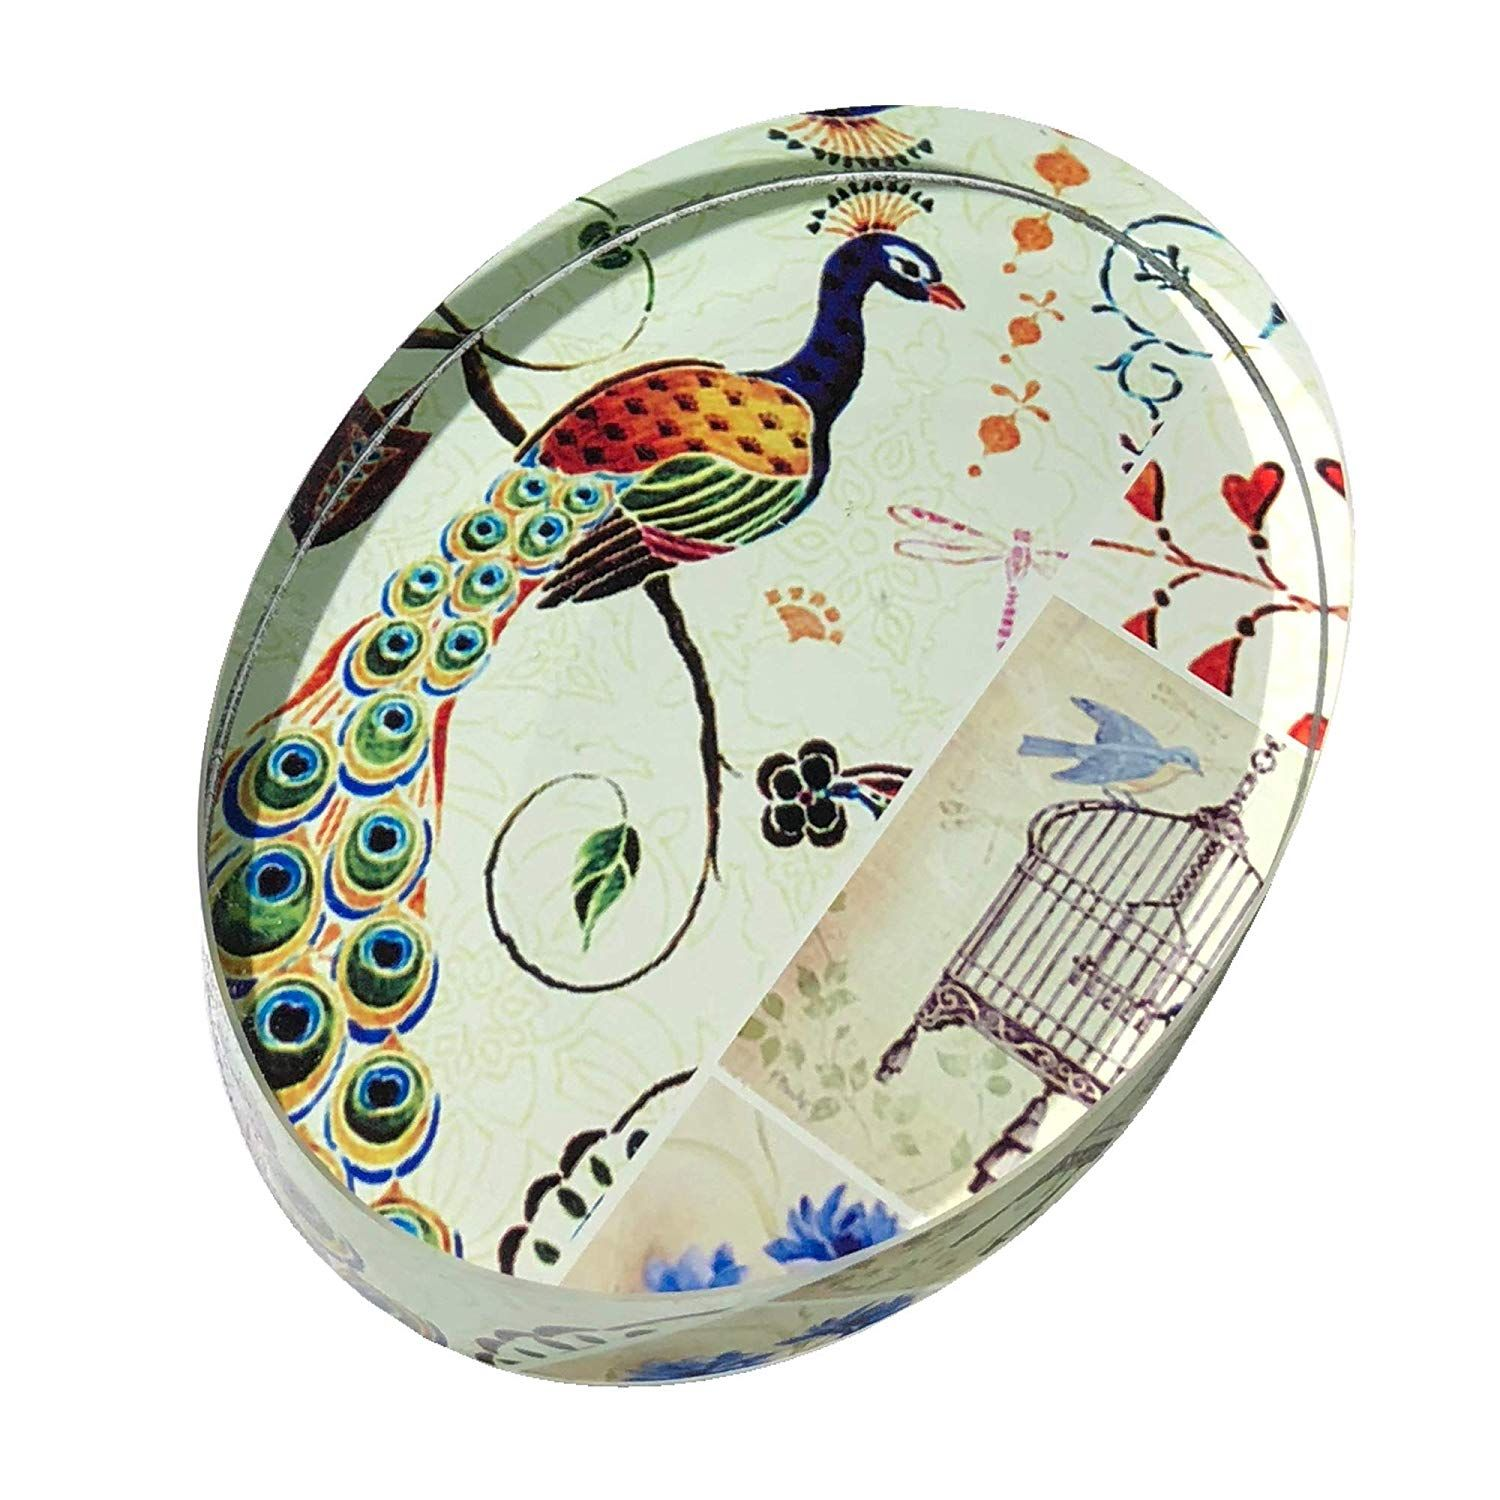 Garden 2 Home Oval Glass Peacock Paperweight - SALE ...